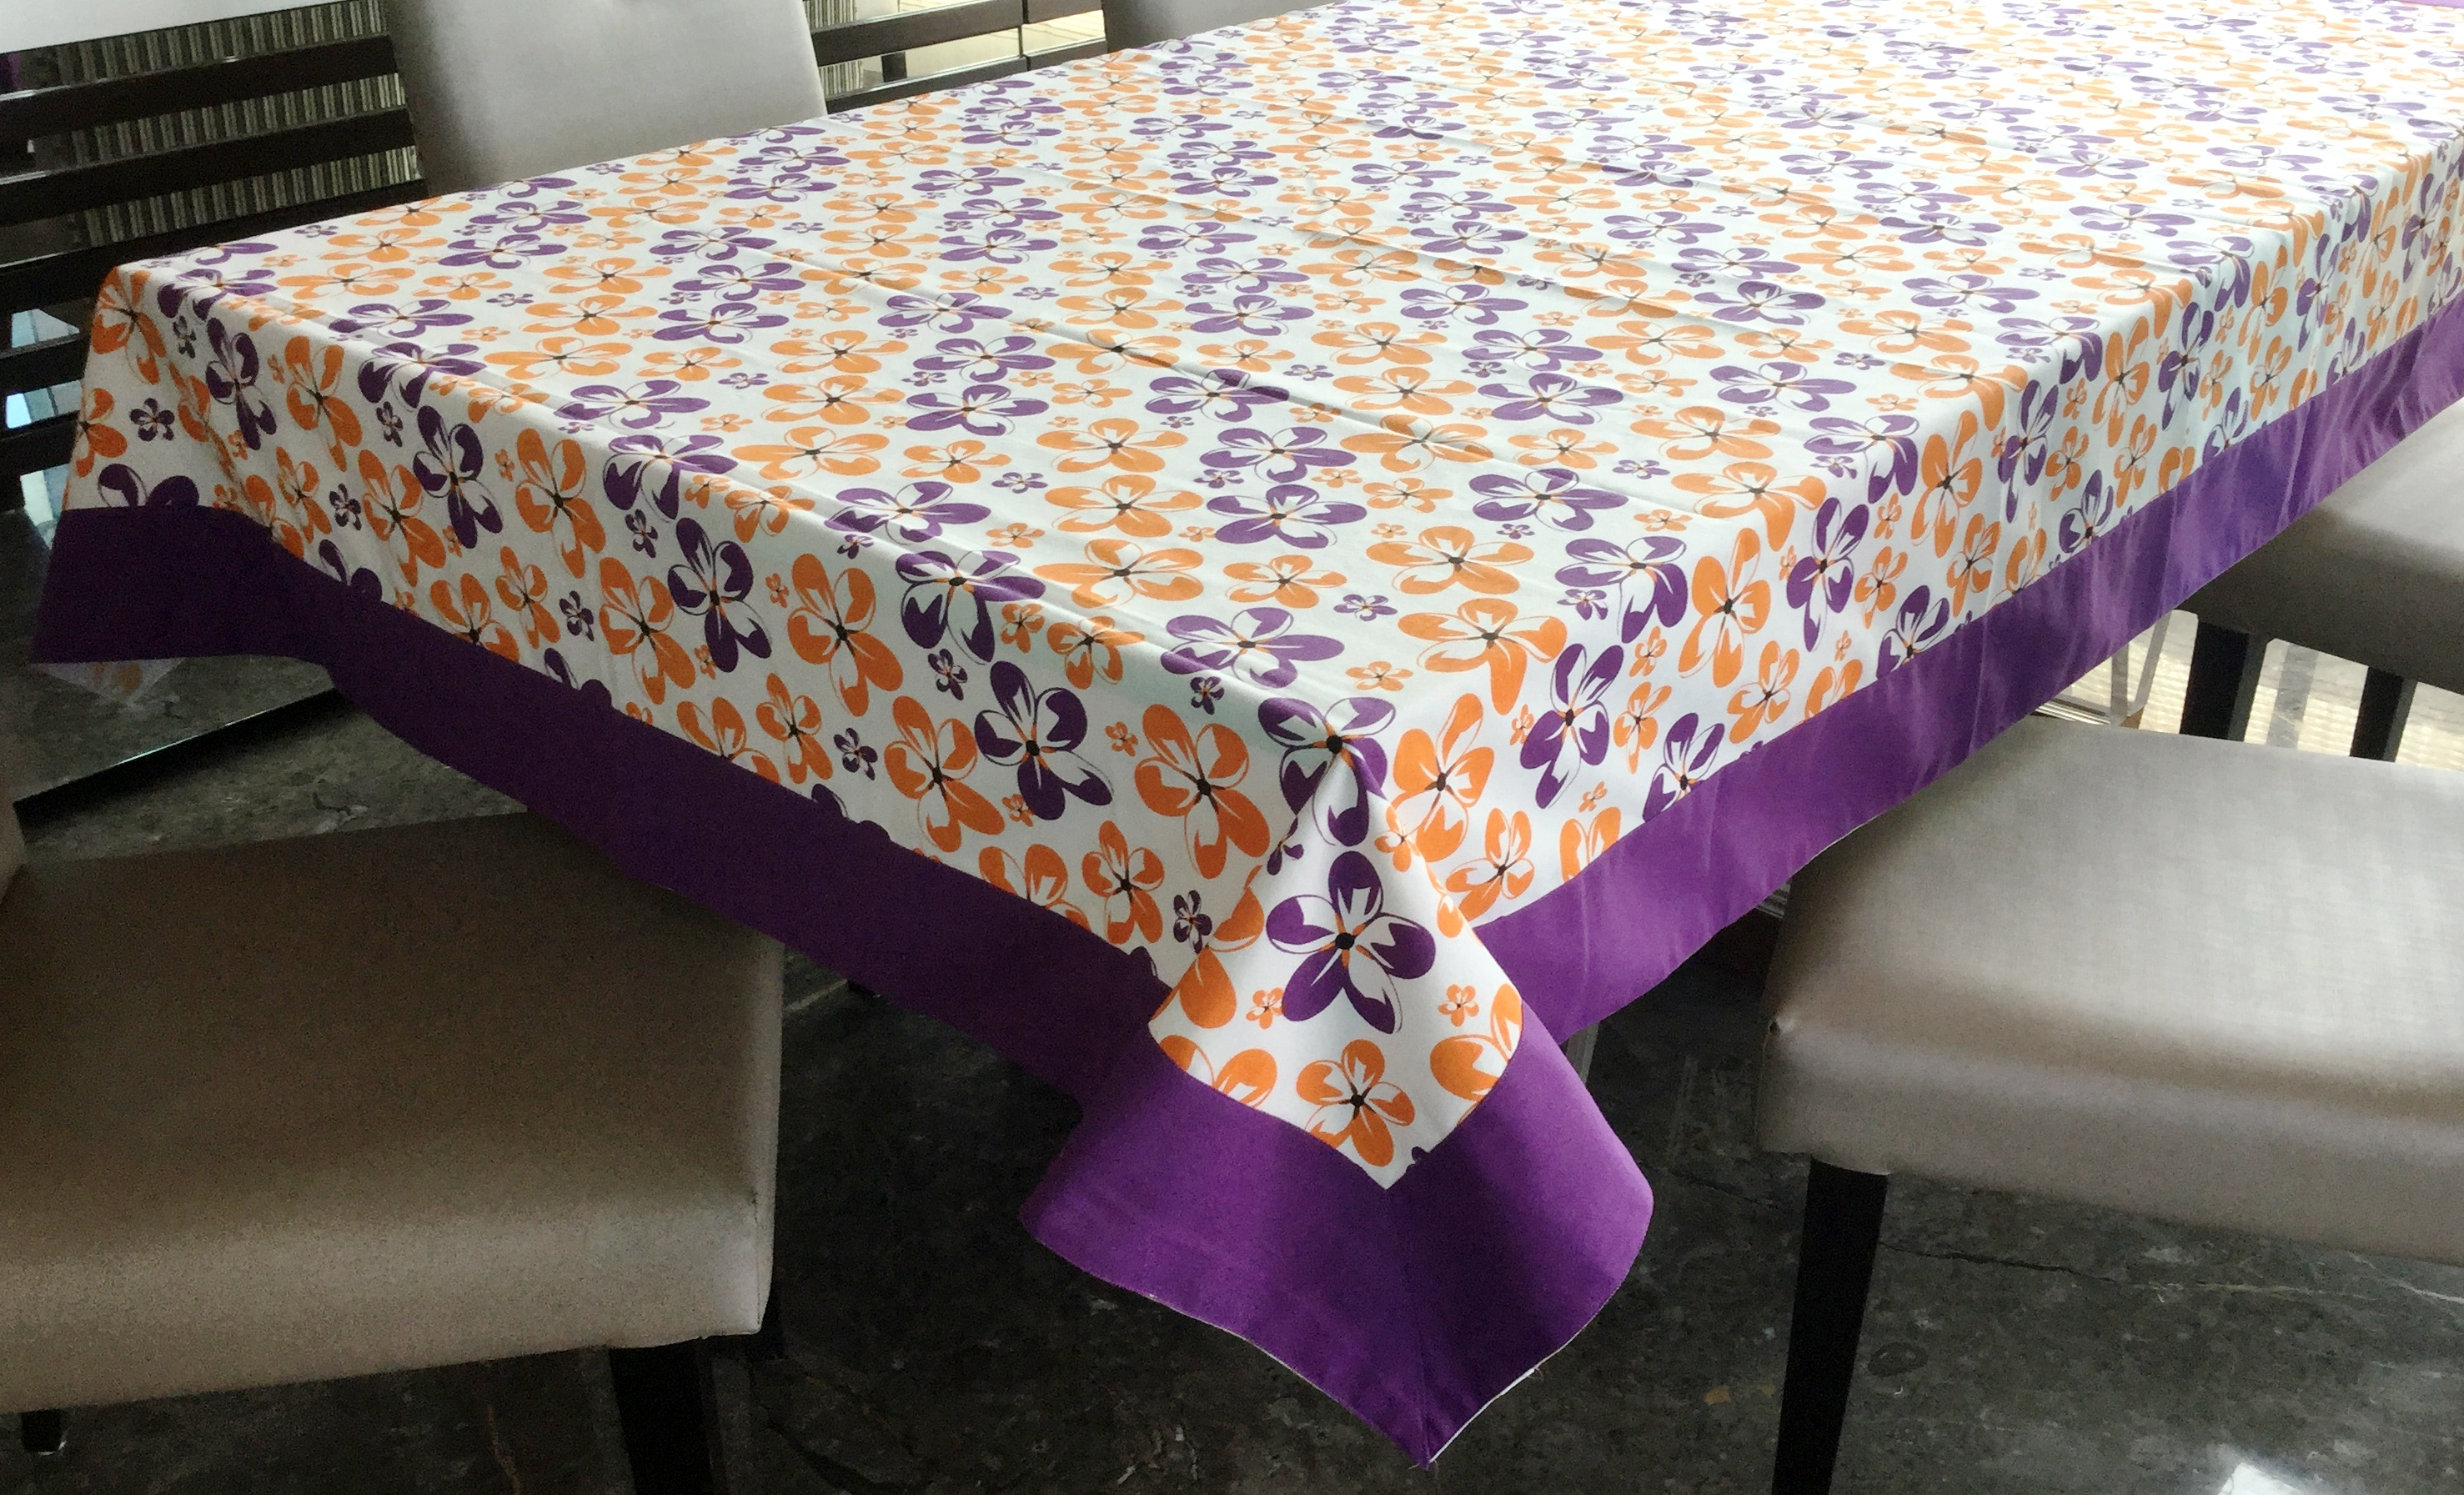 Lushomes 6 Seater Small Shadow Printed Table Cloth